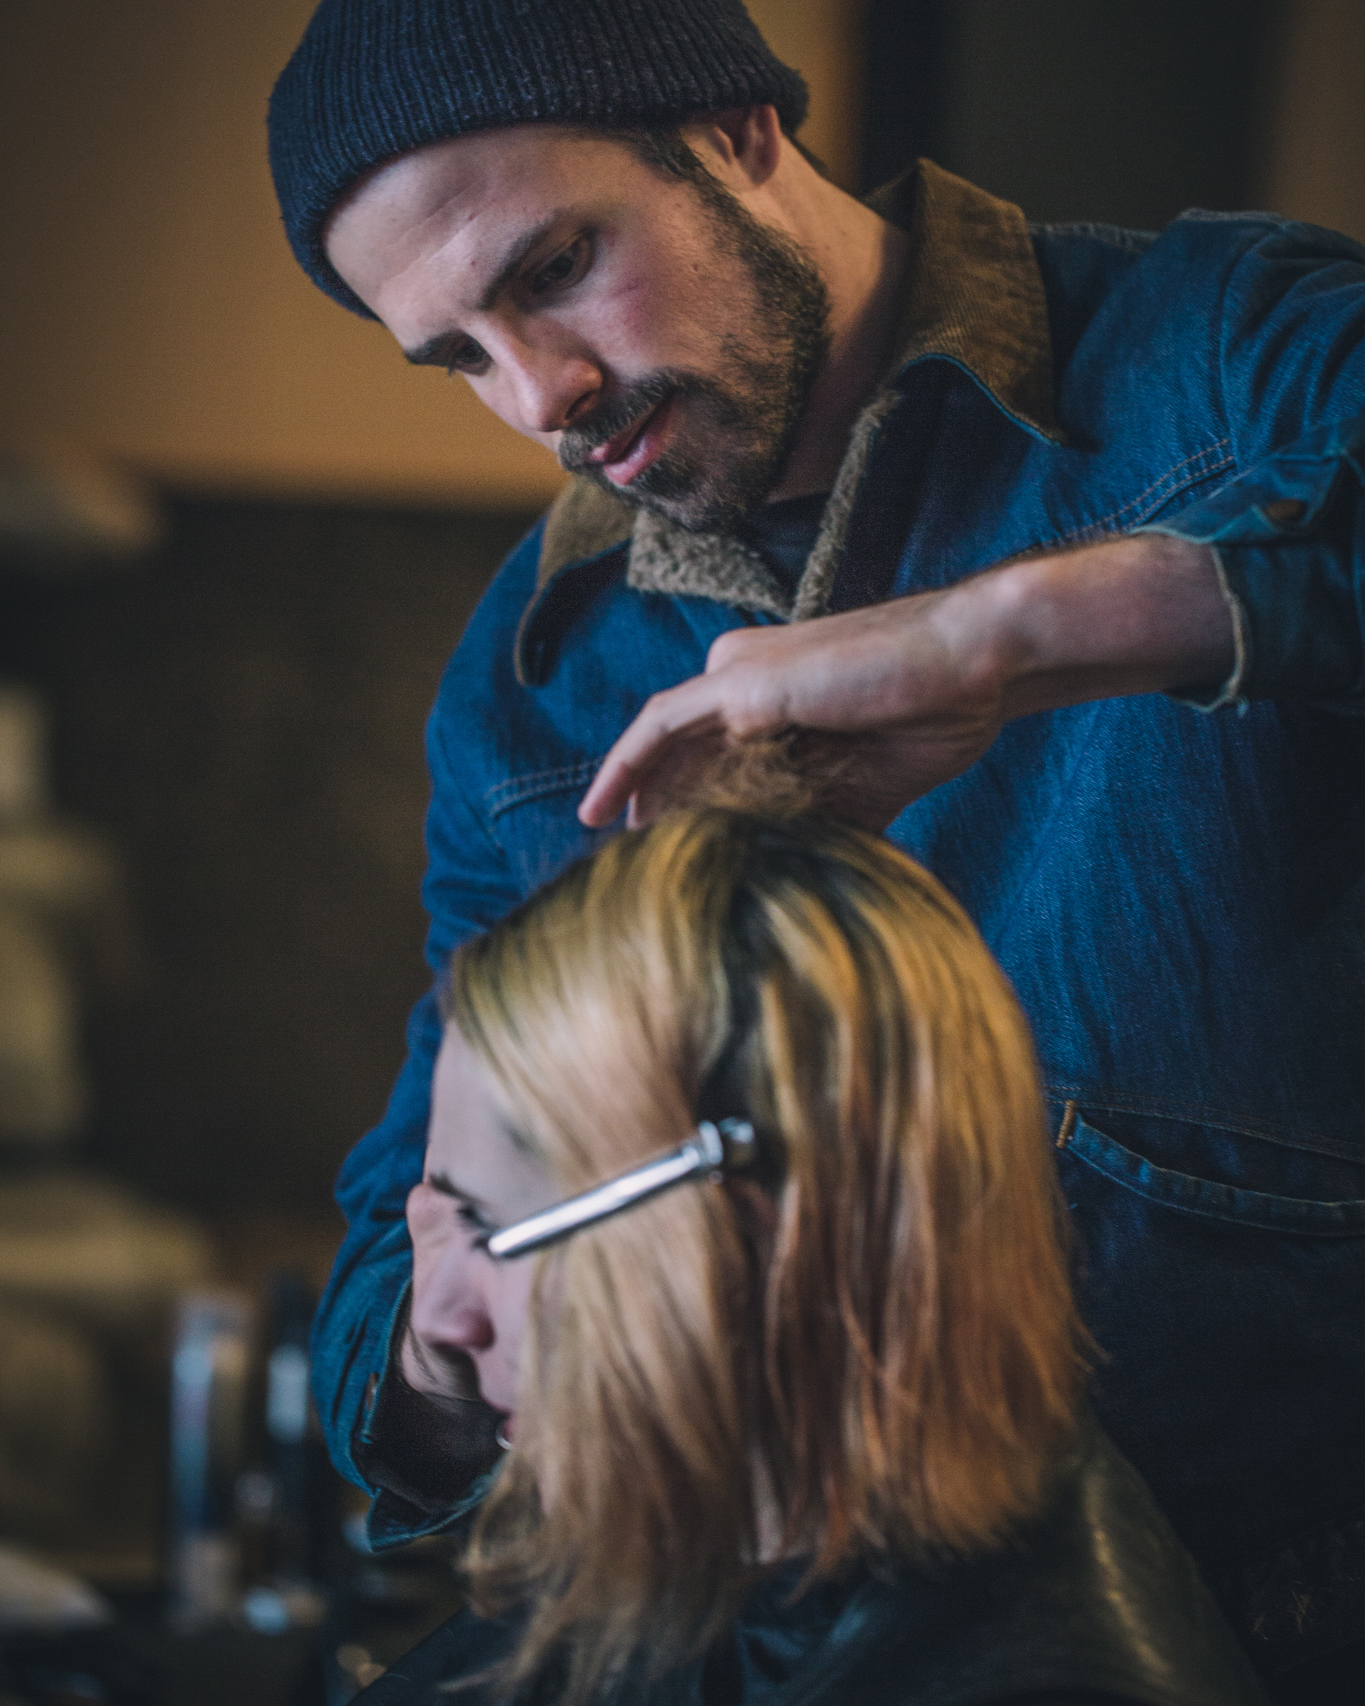 Joshua Coombes - is a British hairstylist who started up #DoSomethingForNothing. He has been working with homeless communities around the world, offering free haircuts. This initiative originally began in 2015, in London.His desire, quite simply, was to positively impact people's lives in the present day, telling their stories on his Instagram channel. Do Something For Nothing is a movement that connects, encourages and inspires other people to carry out small acts of kindness according to their particular skill, passing it on to those who have nothing.